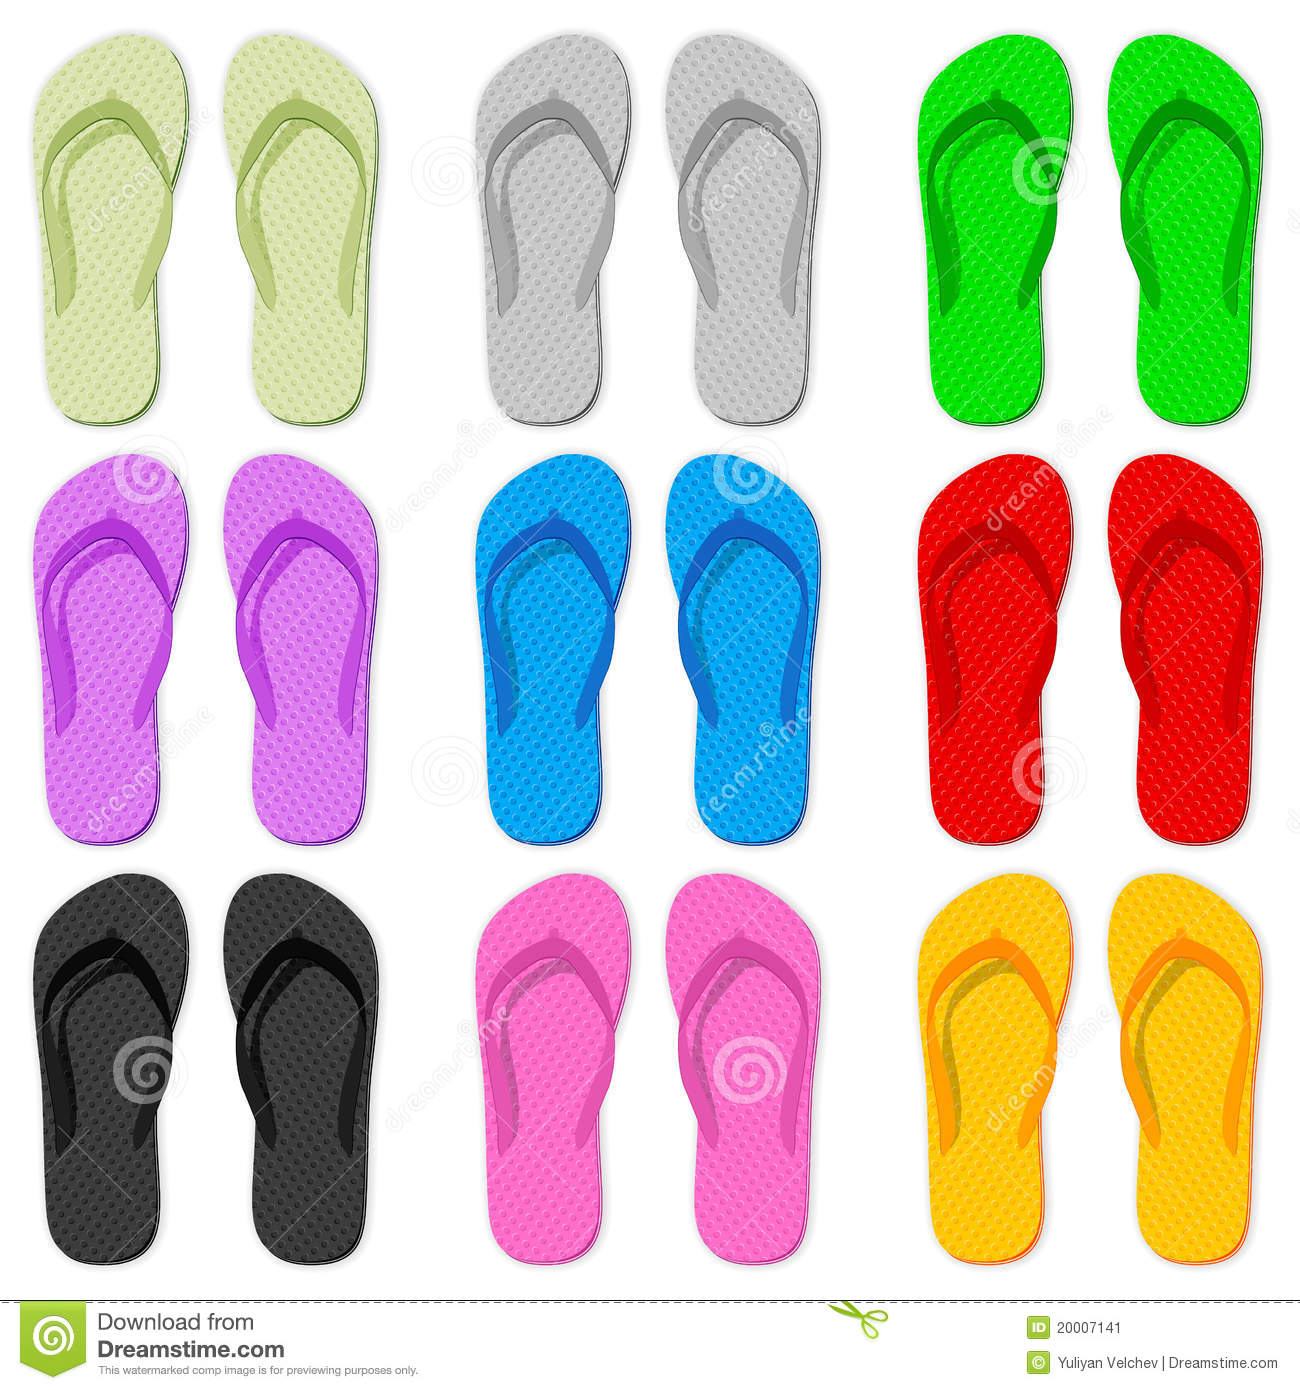 aa1919995f52 Flip flop set on a white background. Designers Also Selected These Stock  Illustrations. Notepad vector illustration